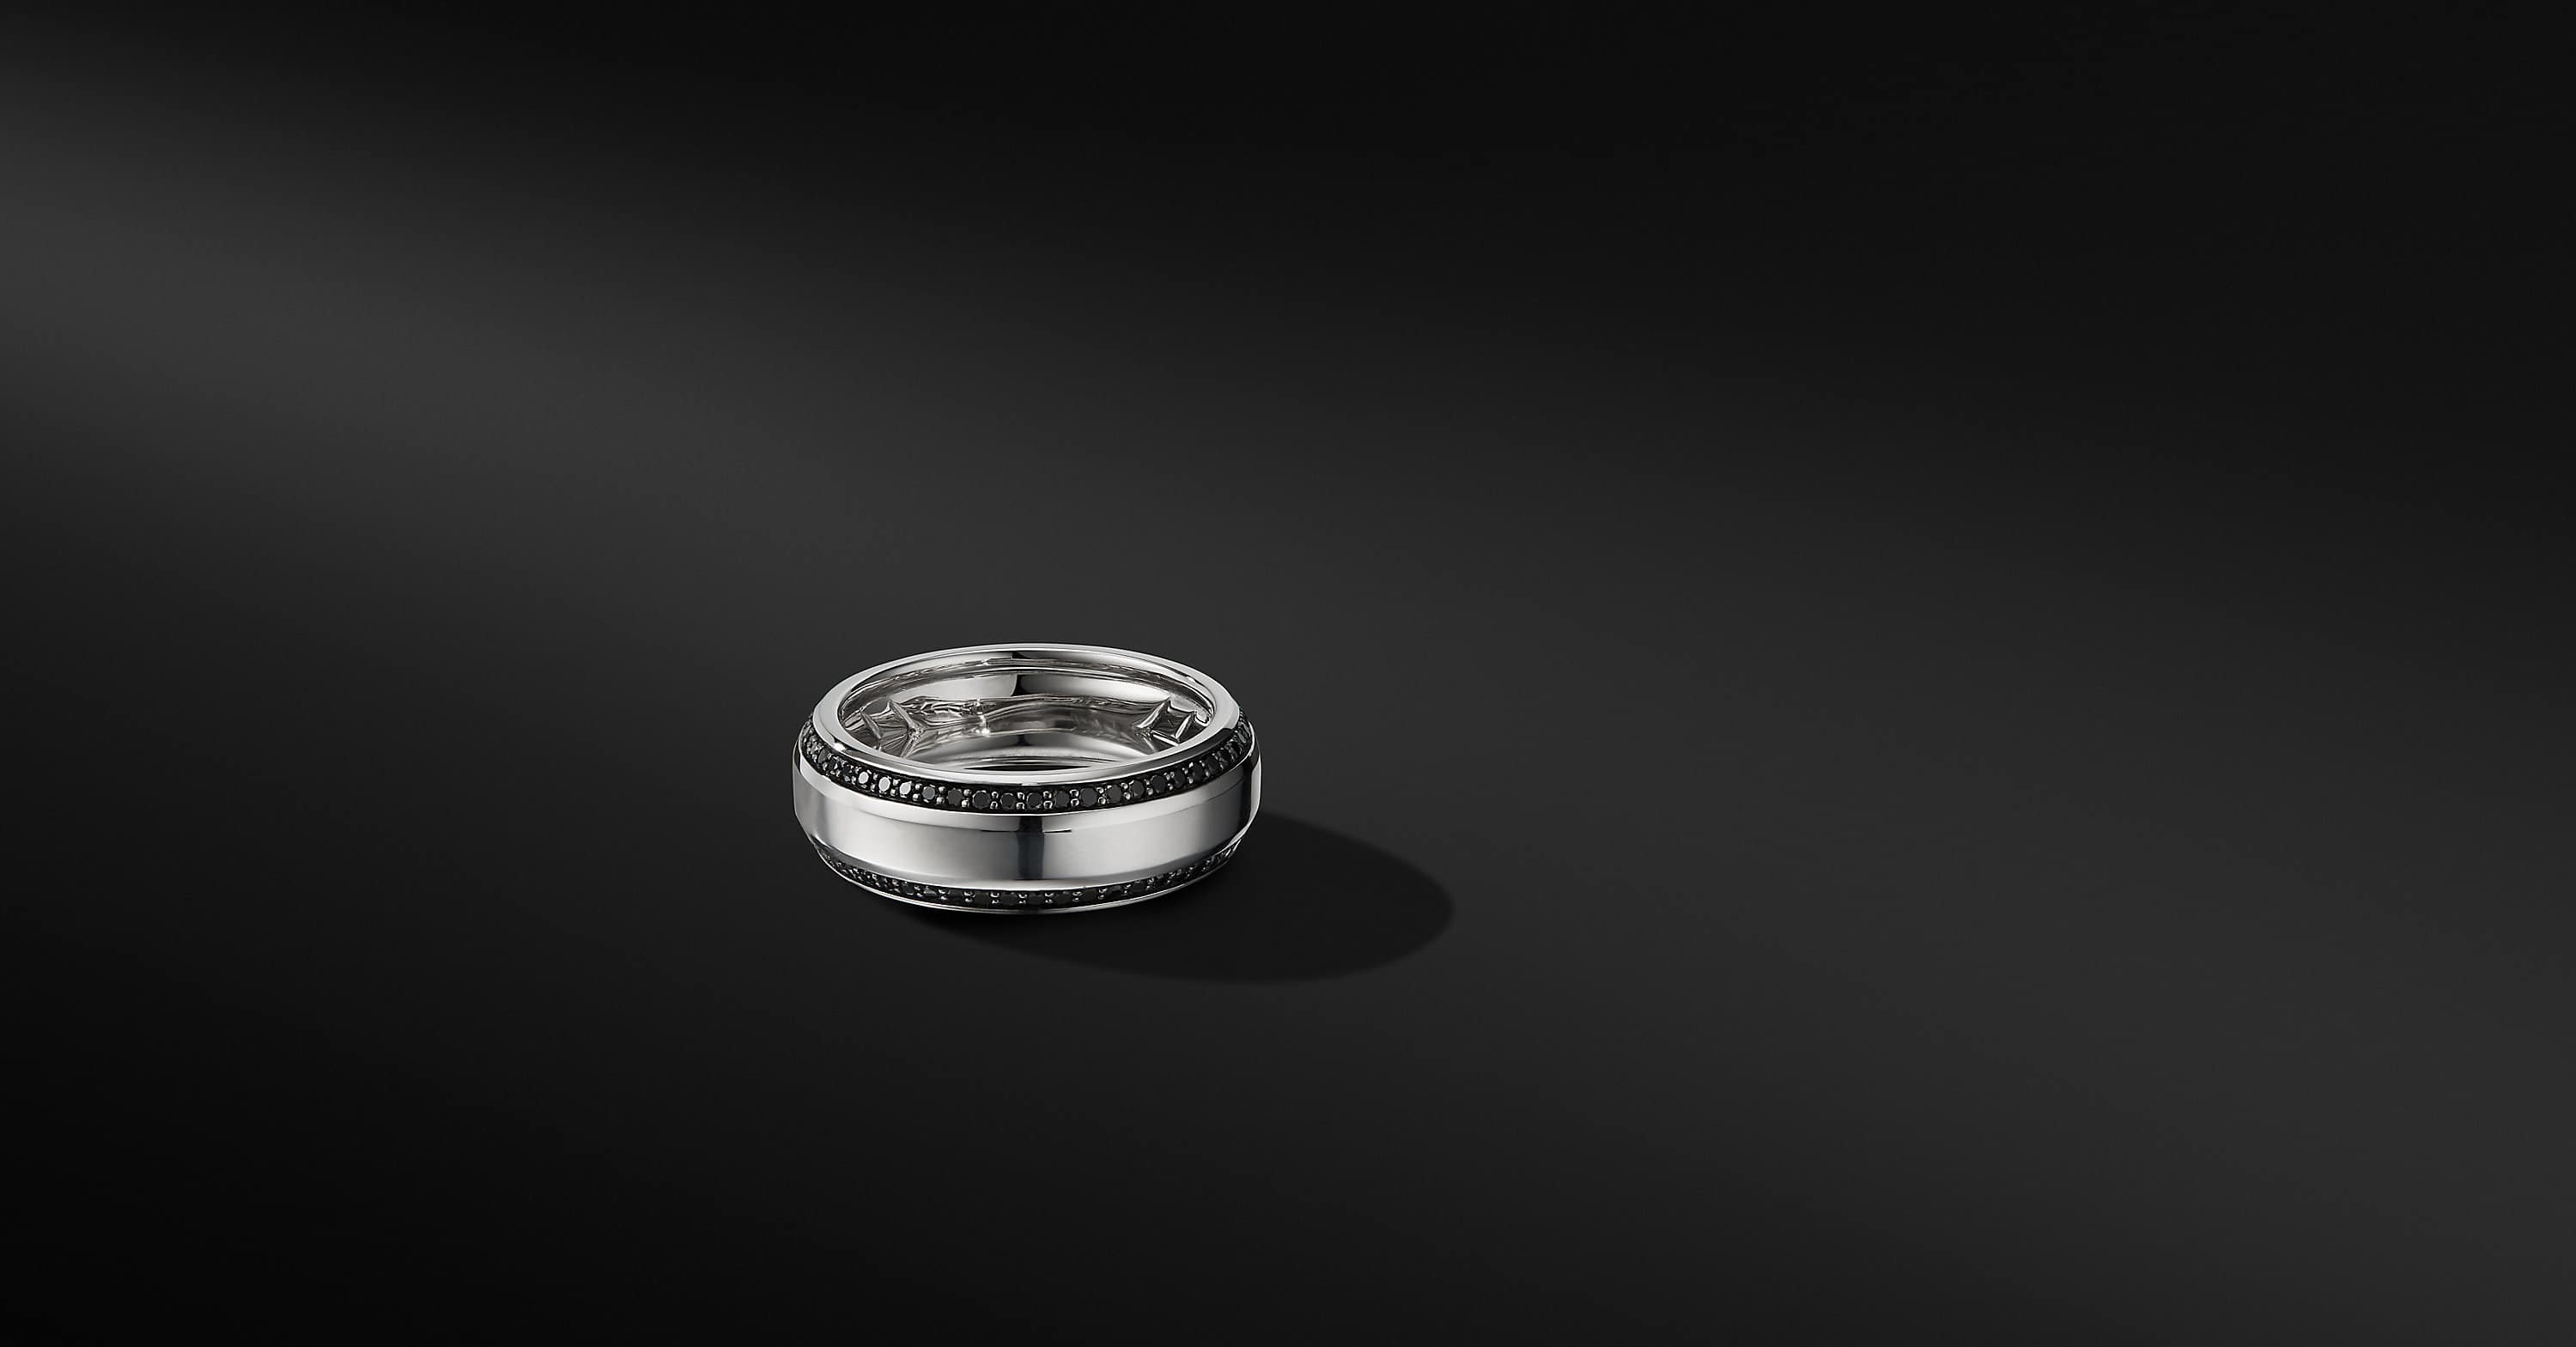 Beveled Band Ring in 18K White Gold with Black Diamonds, 8mm